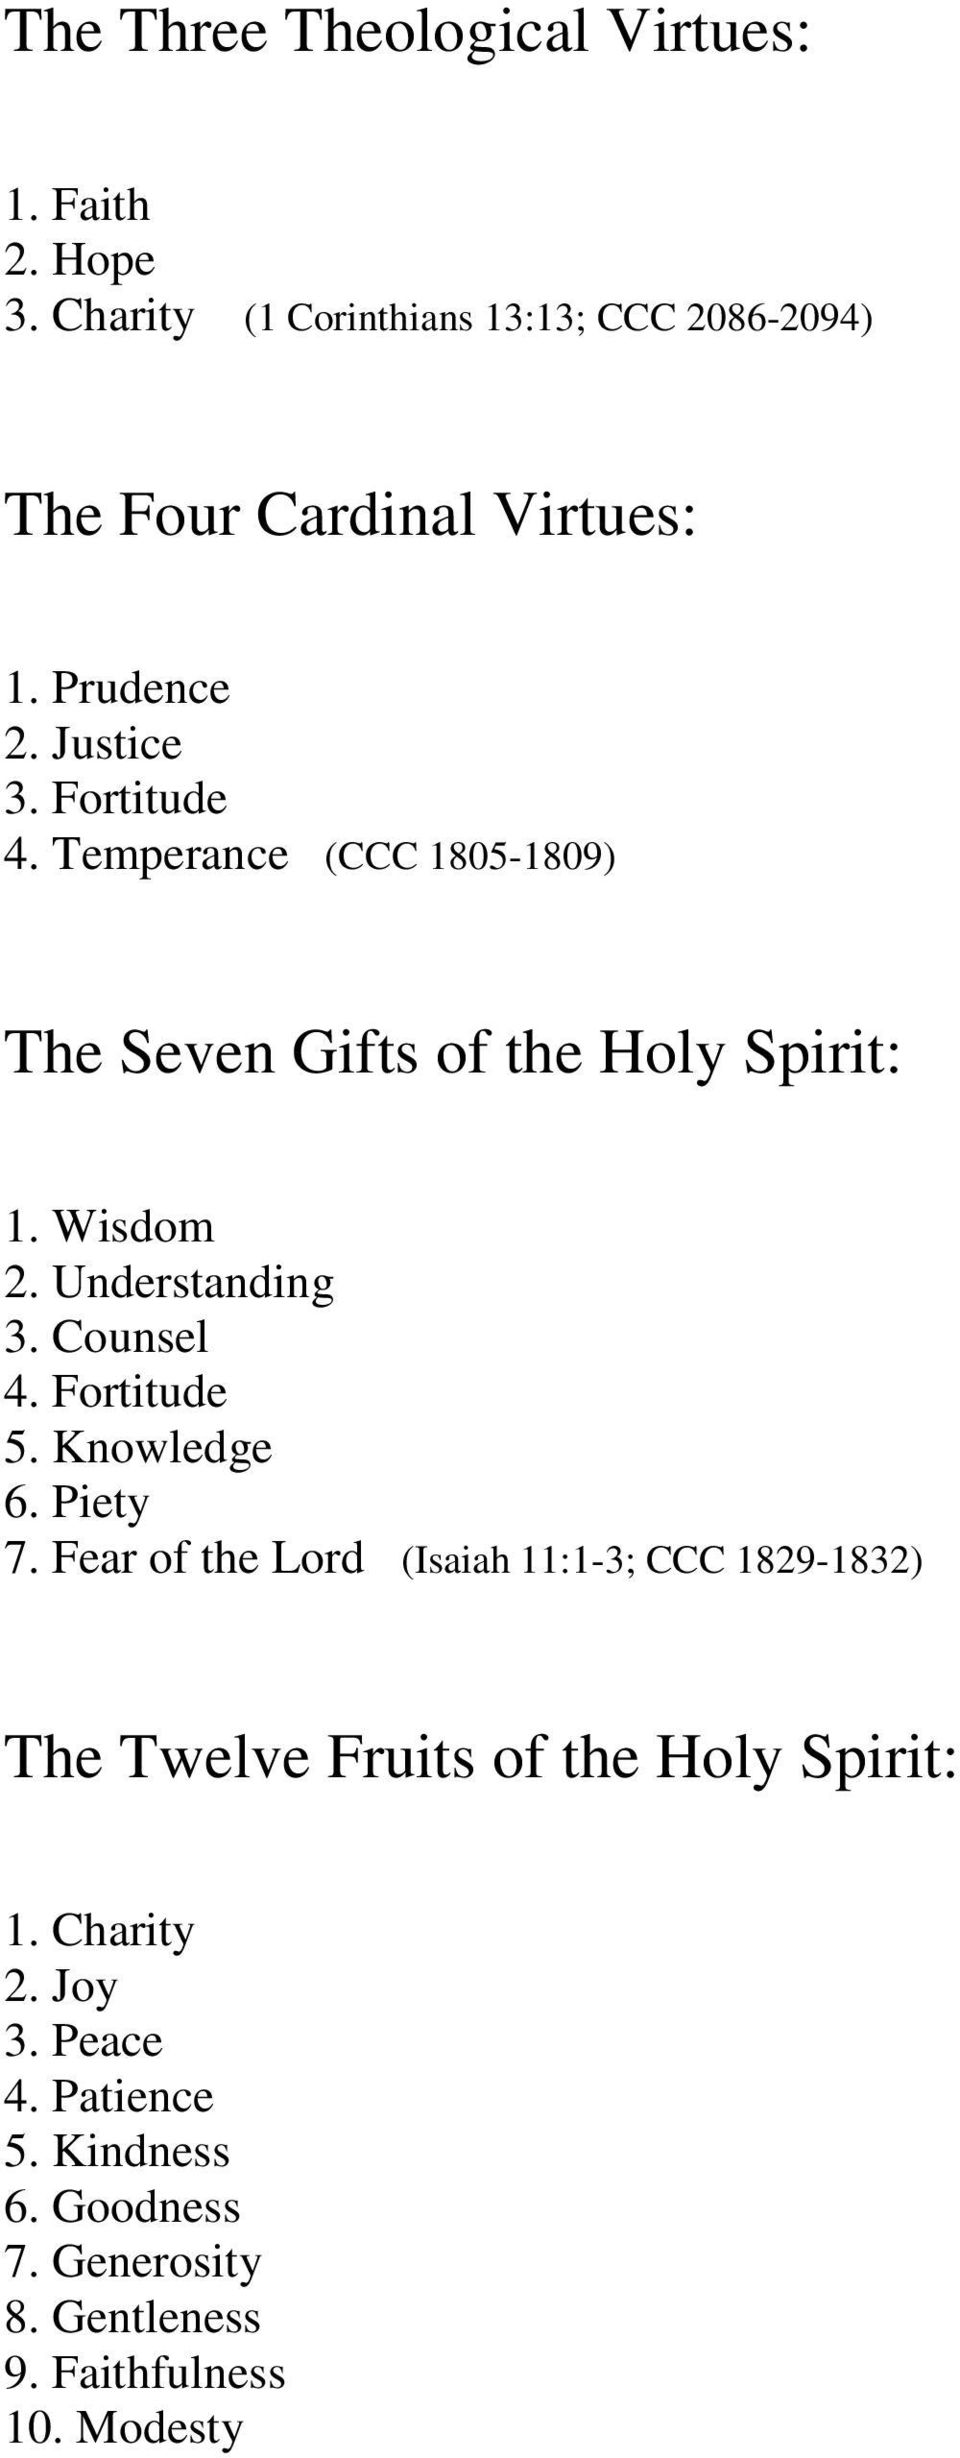 HELPS FROM THE CATECHISM OF THE CATHOLIC CHURCH - PDF